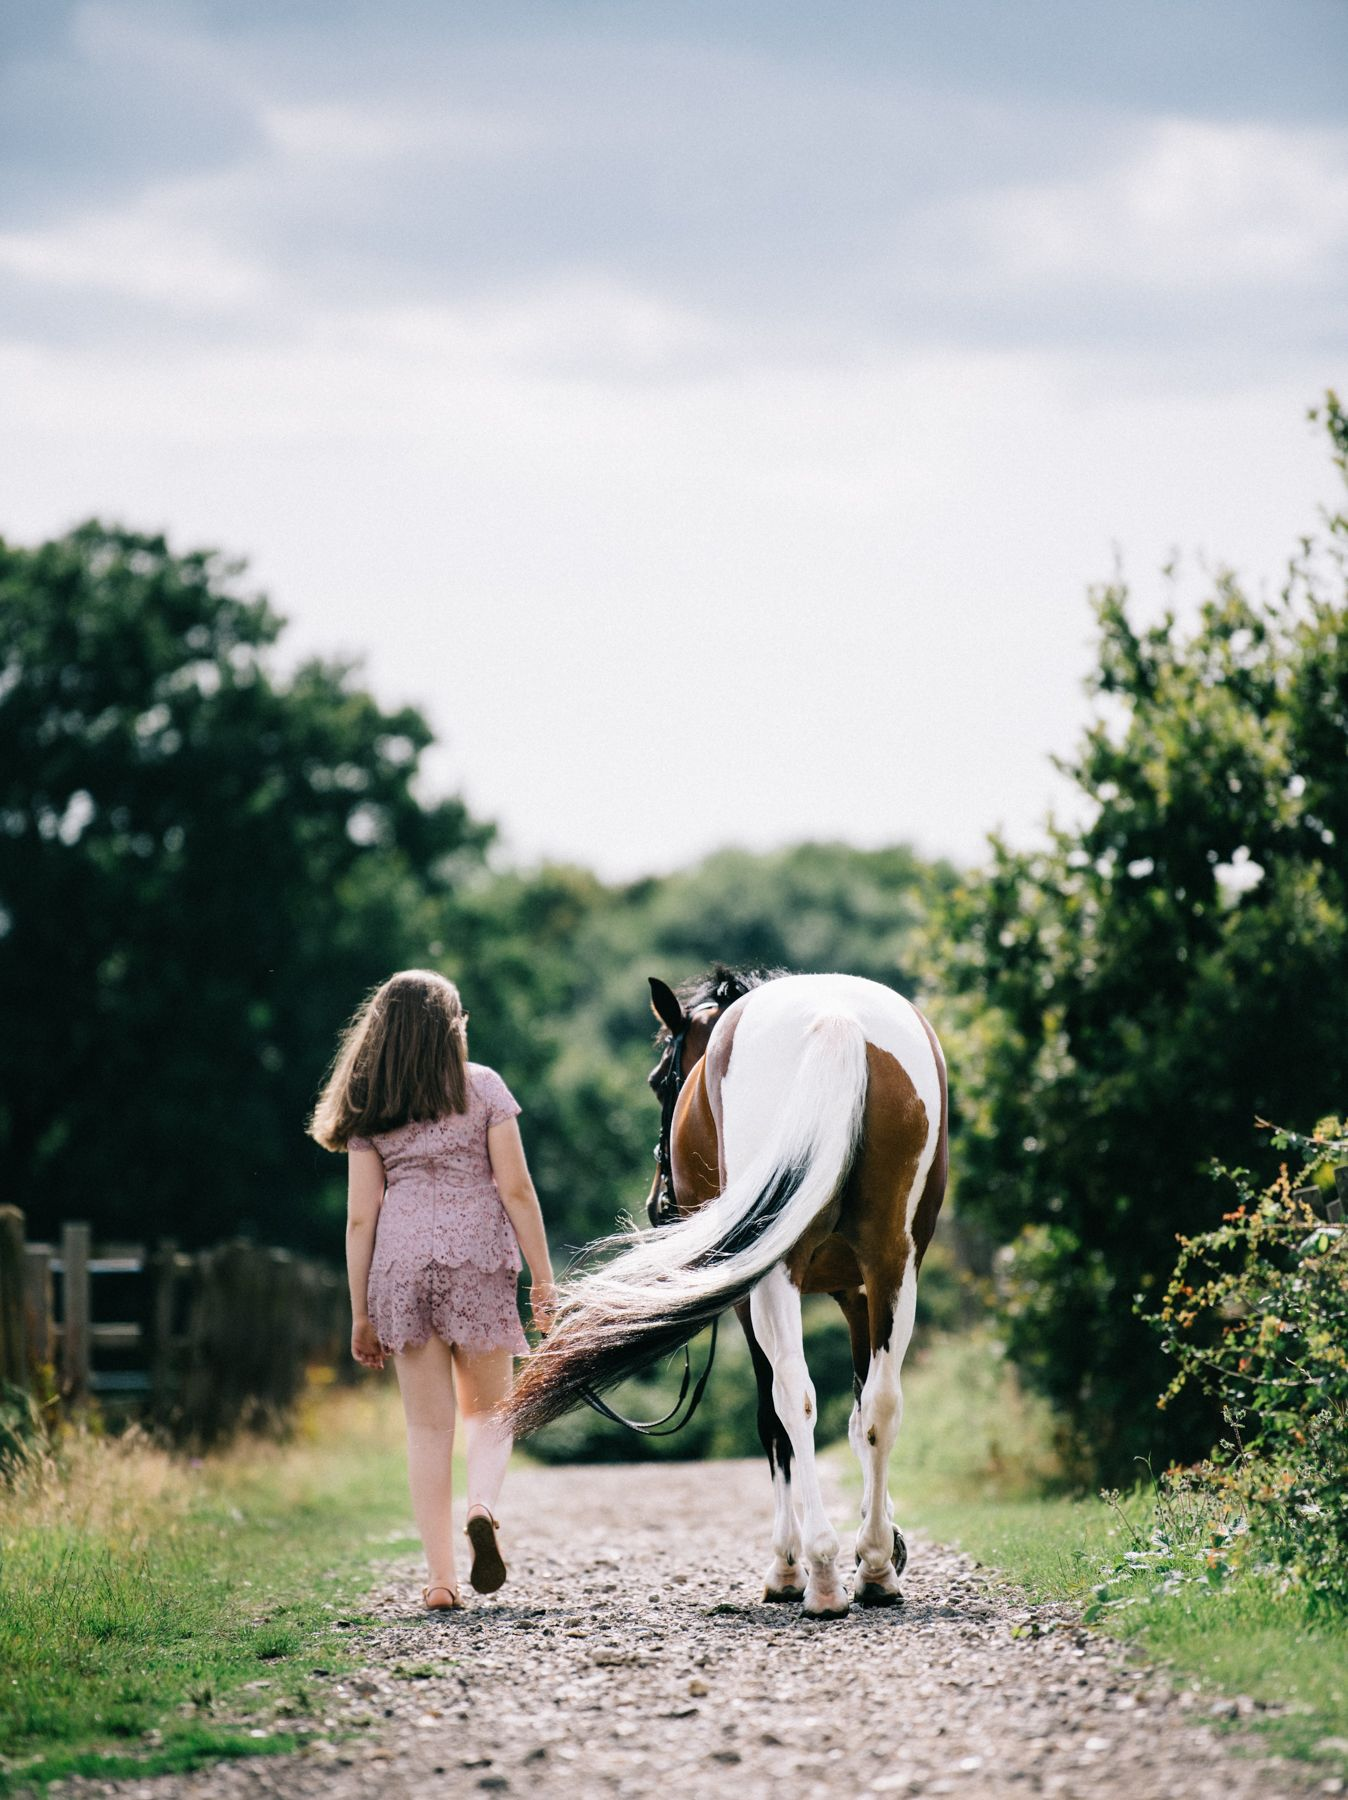 I love capturing the horse and owner walking away from me